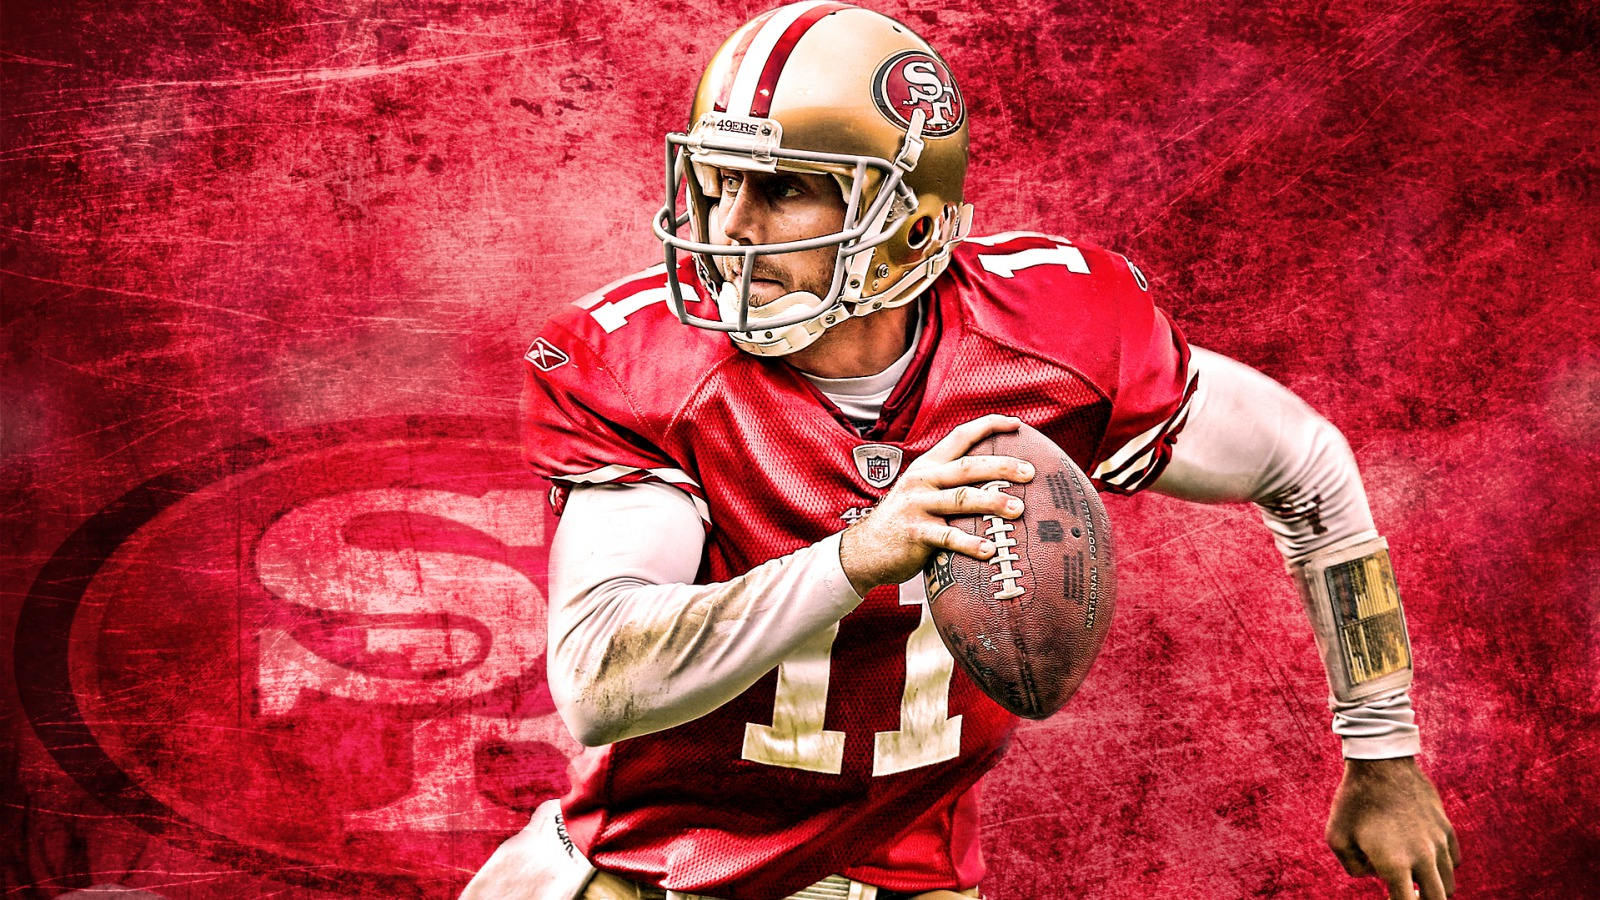 Wallpaper of the day San Francisco 49ers San Francisco 49ers 1600x900